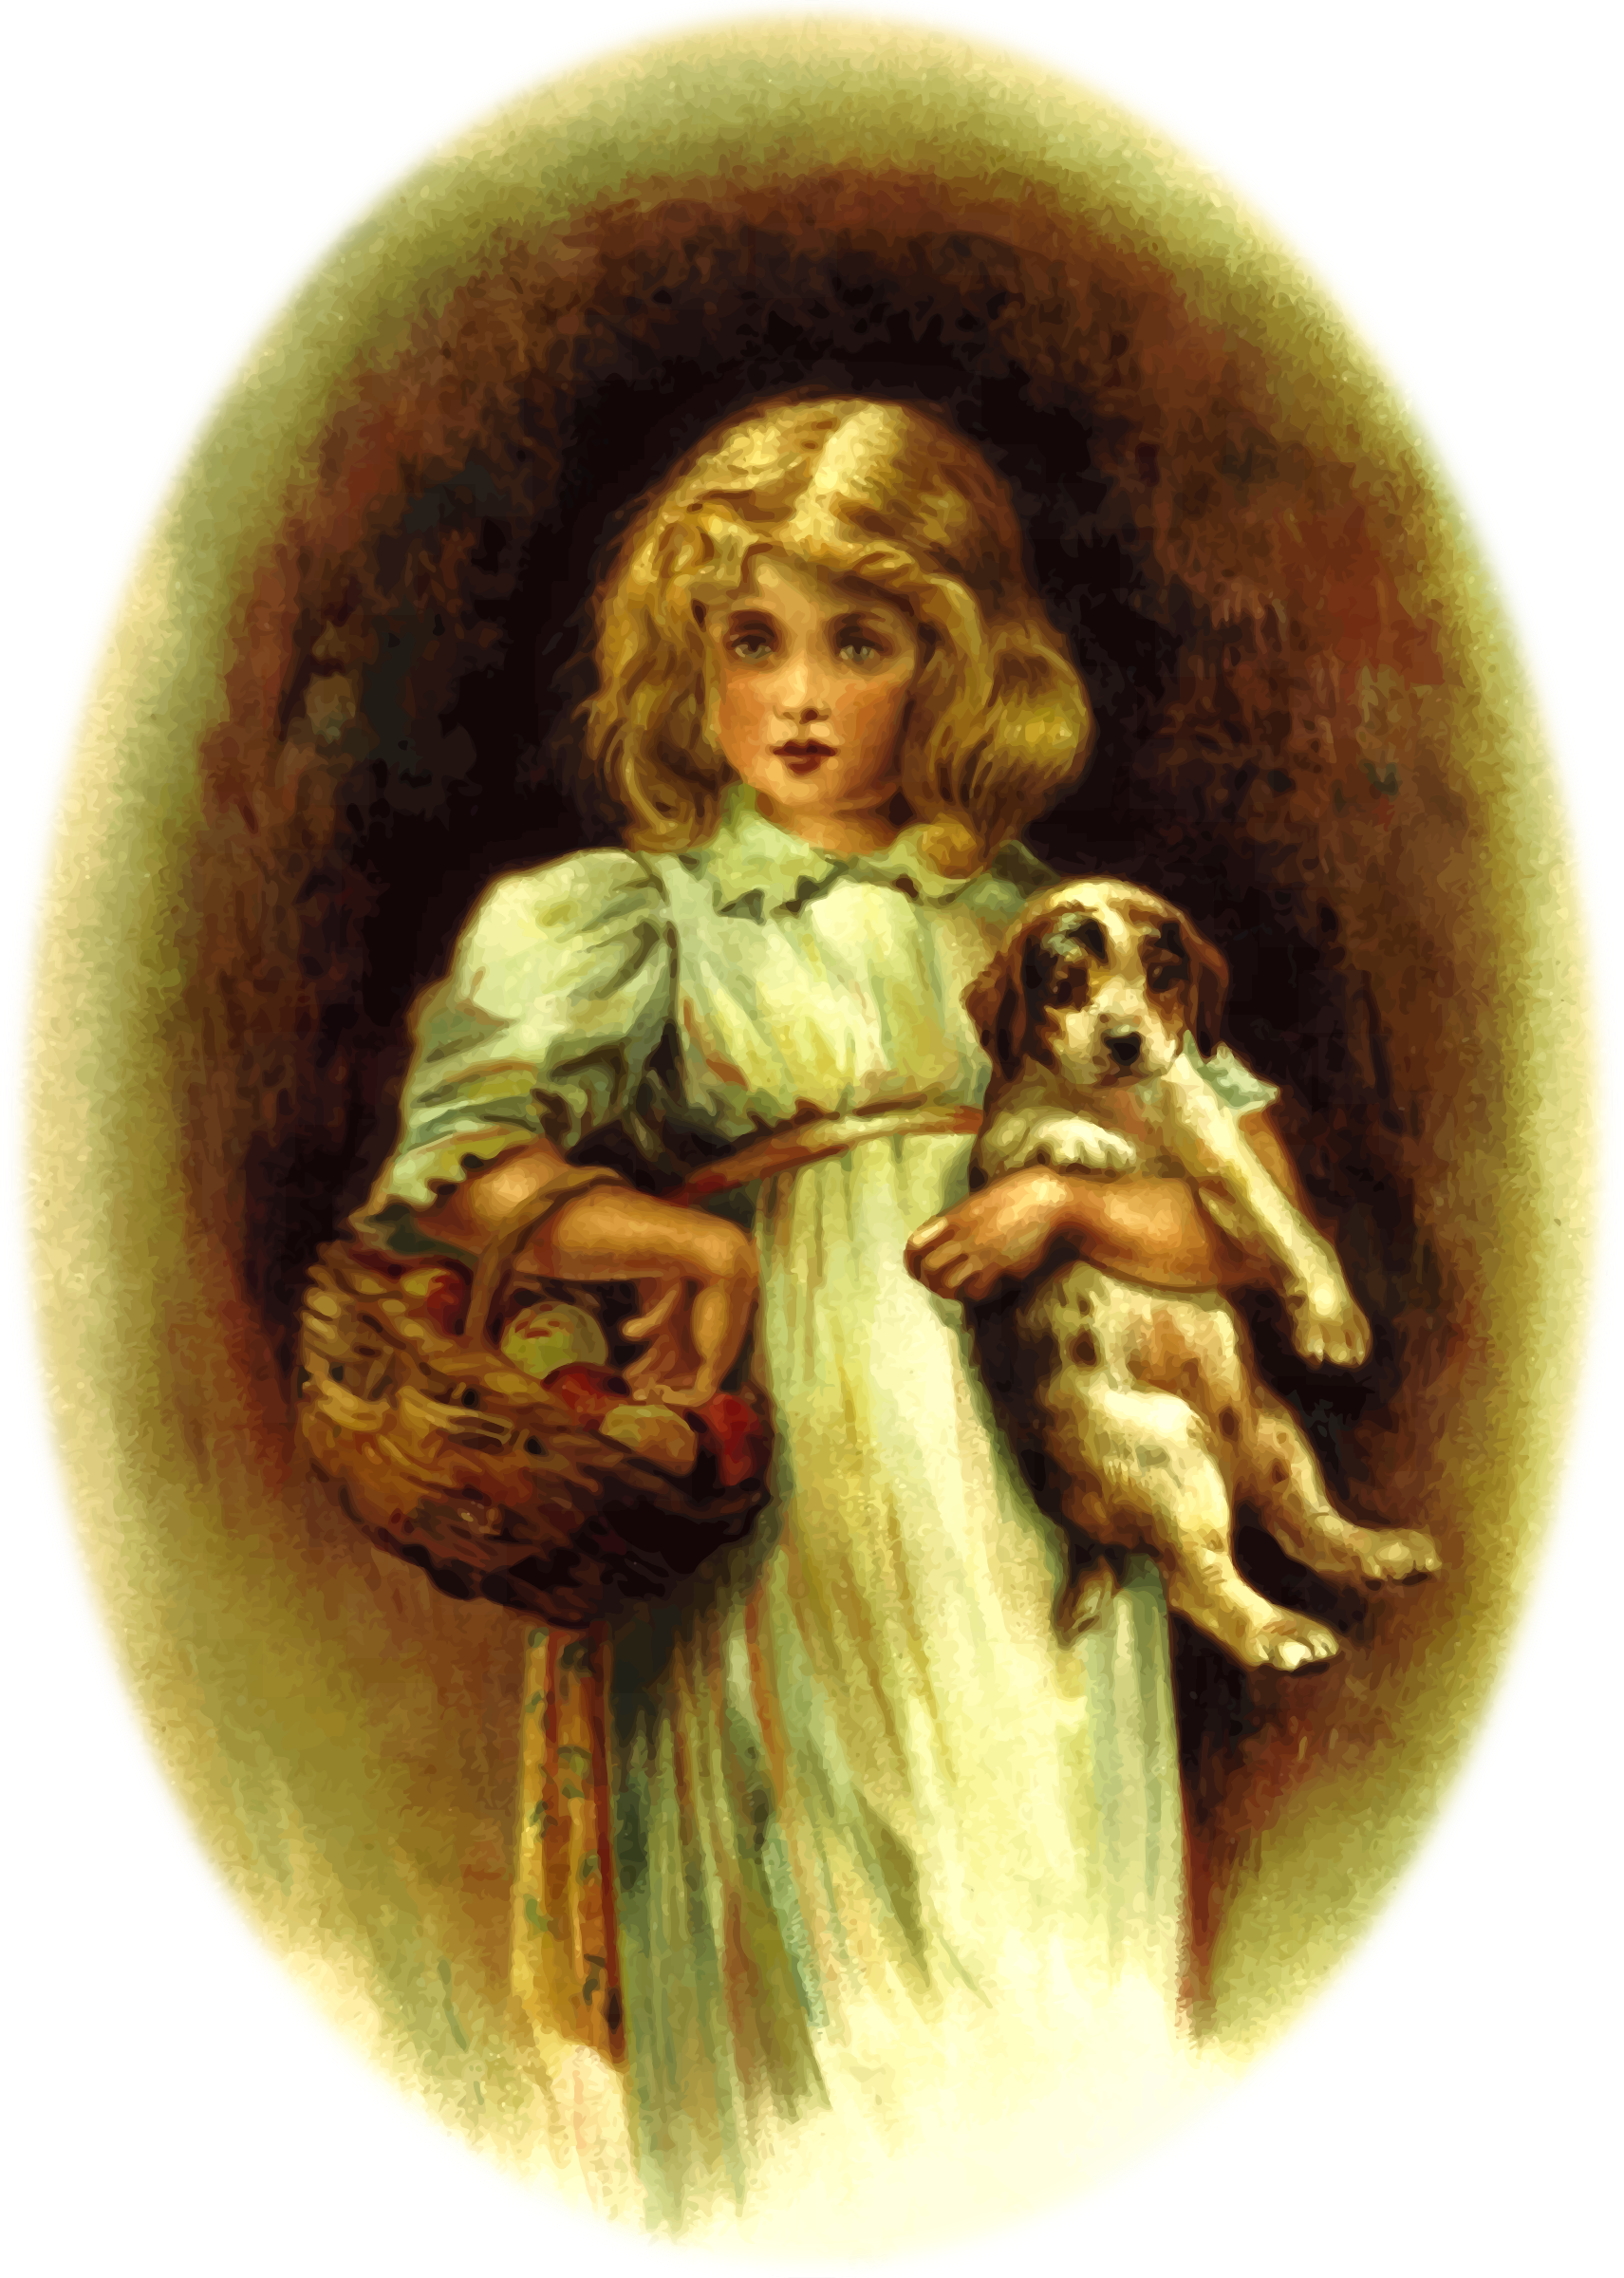 Girl with dog by Firkin